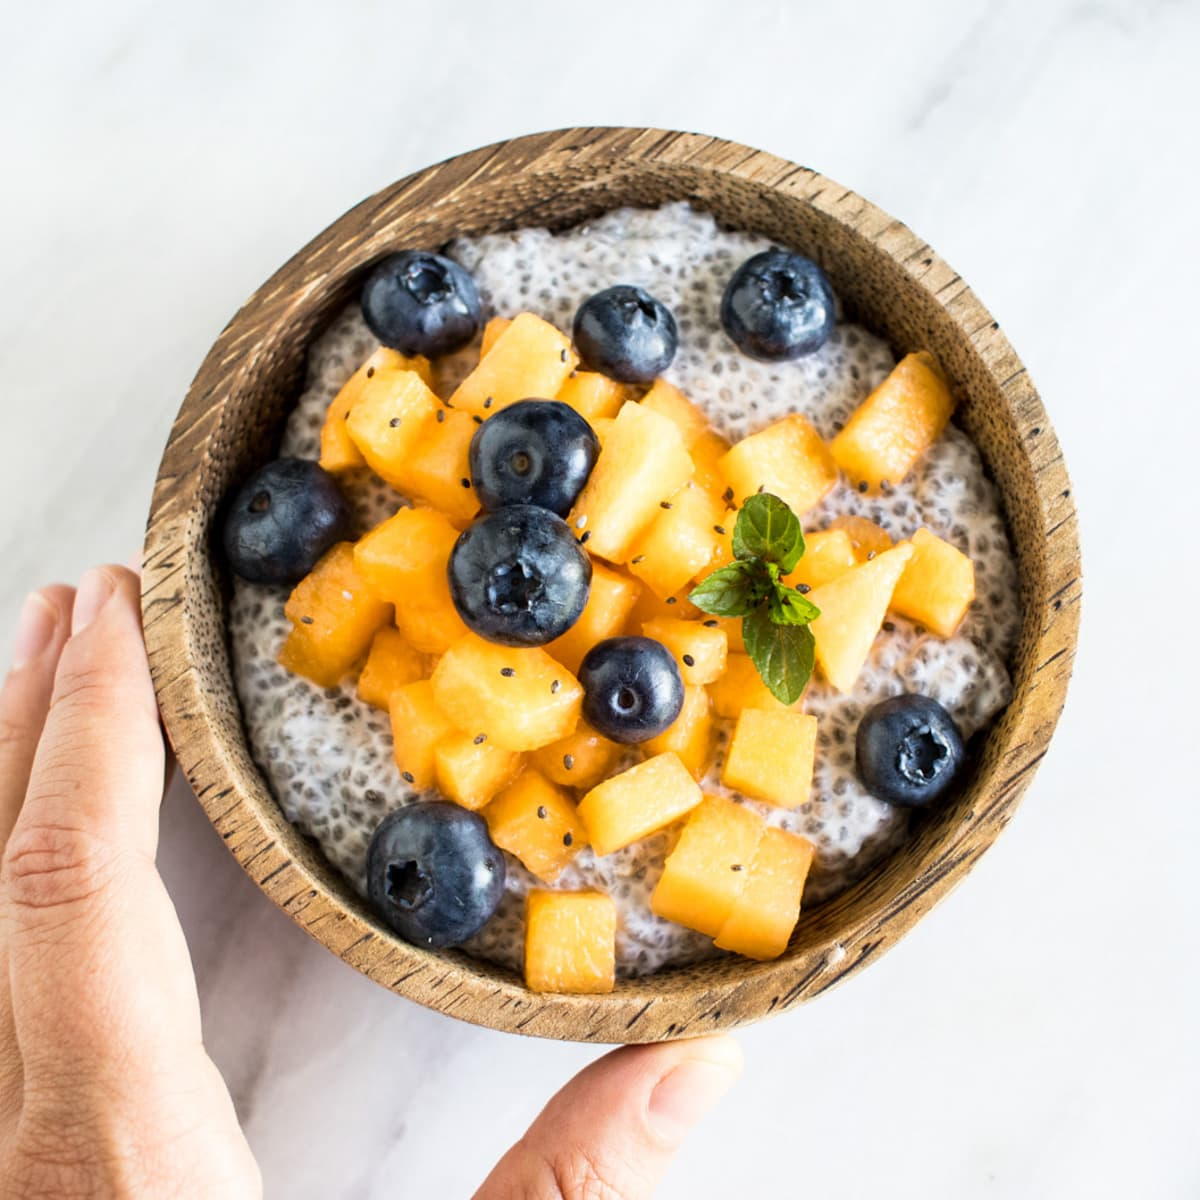 A bowl of chia pudding